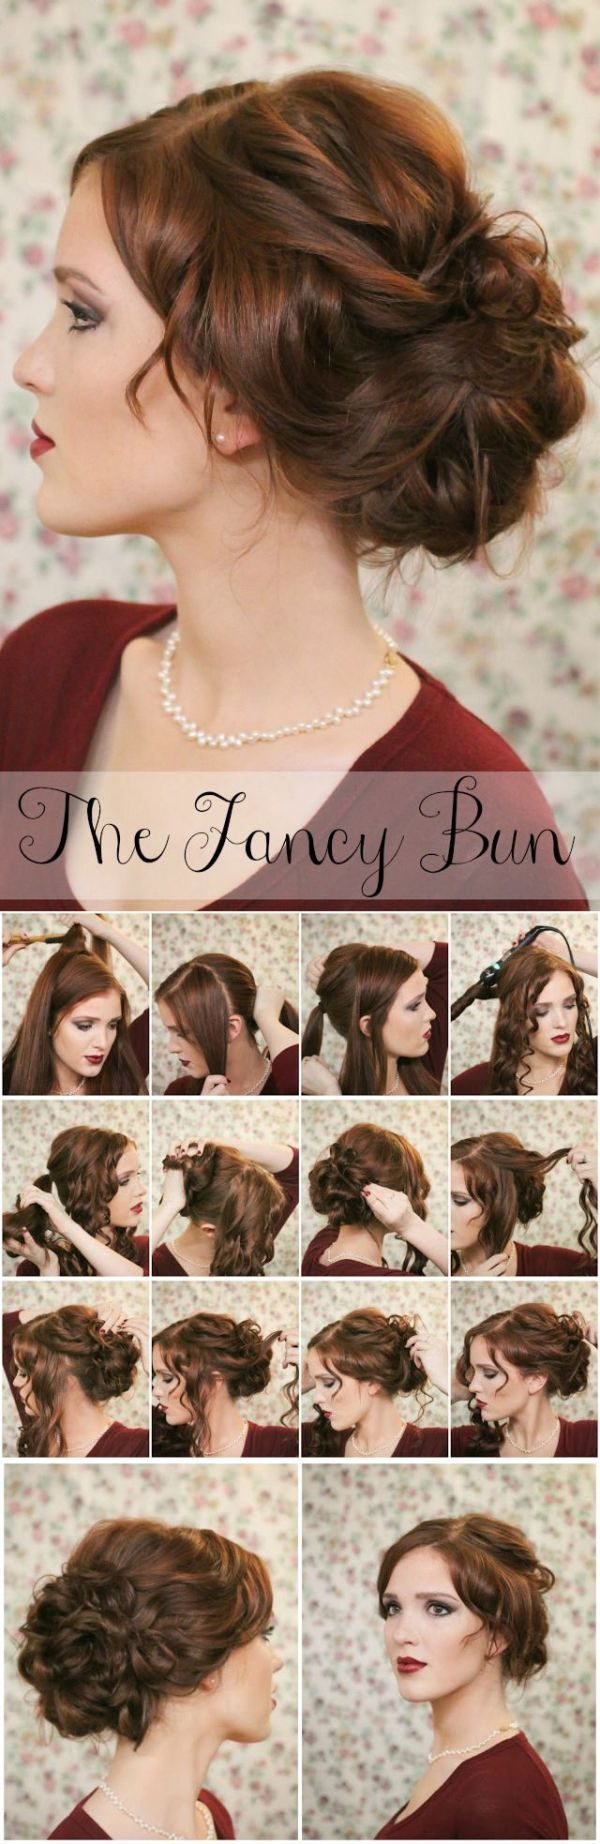 best beautiful hair and ideas images on pinterest hairstyle